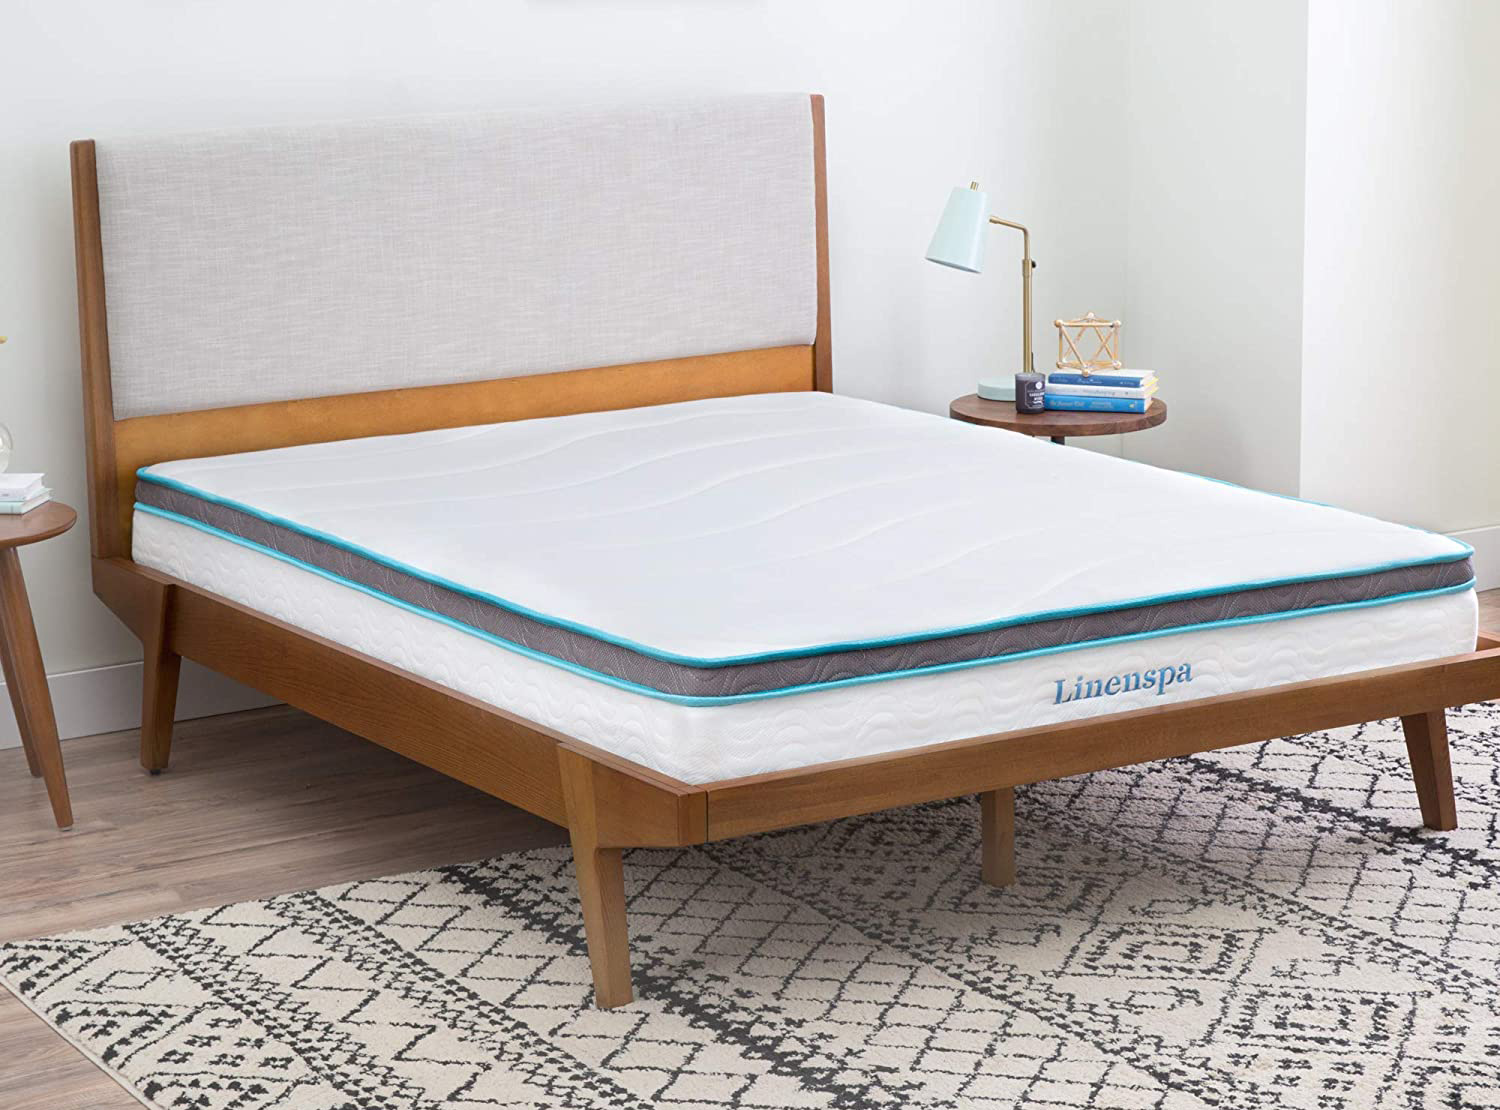 Amazon's top memory foam mattress has 67,000 5-star ratings – get one today for $130